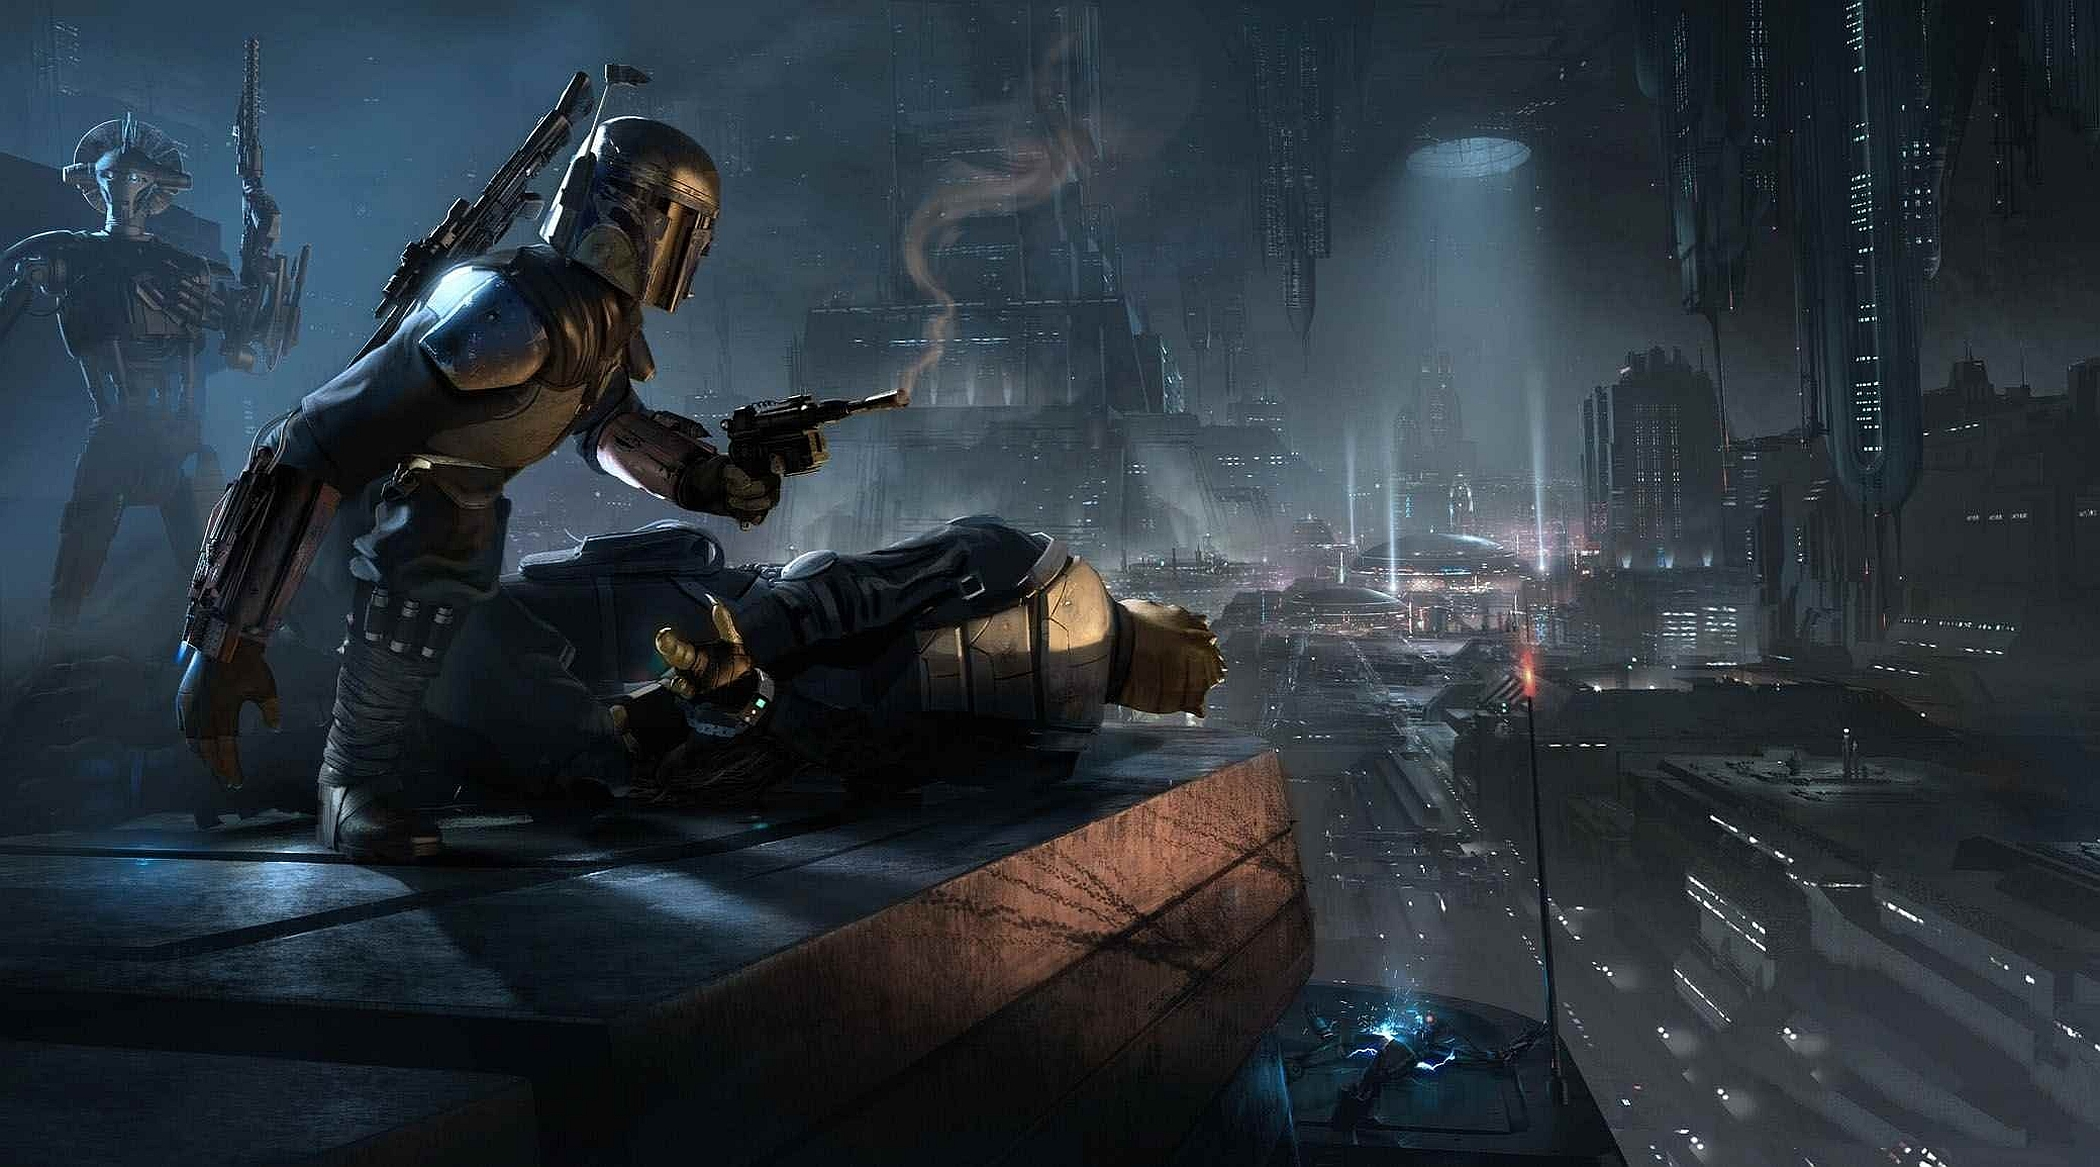 46 Star Wars 1313 Wallpaper On Wallpapersafari